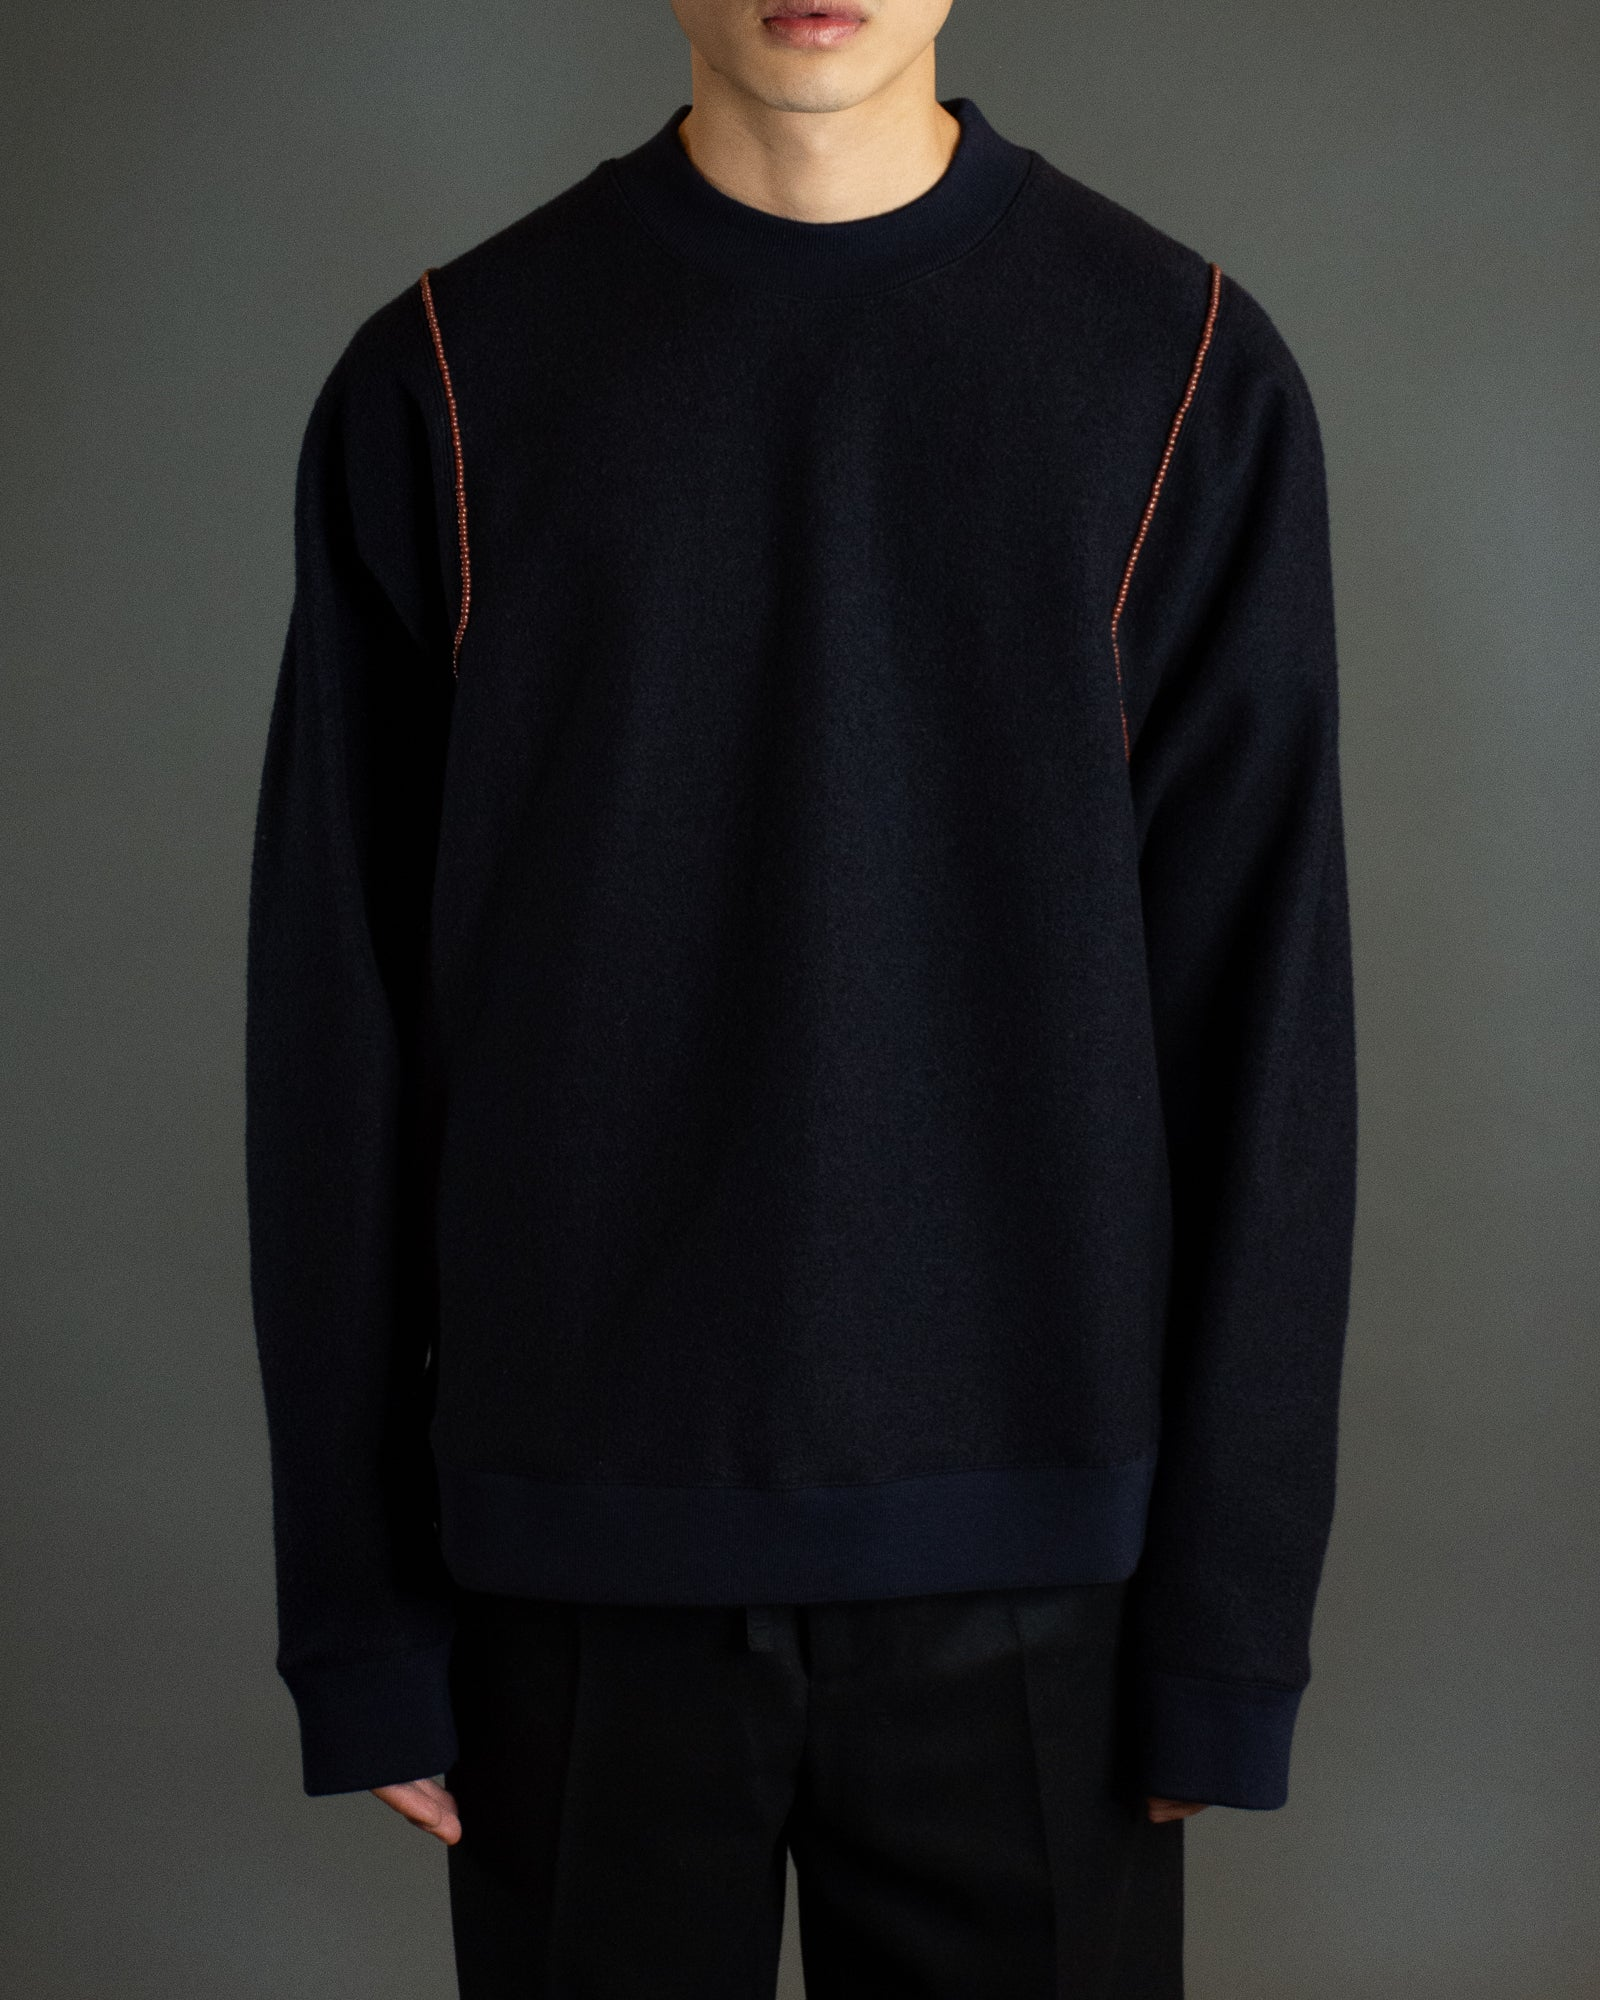 JIL SANDER BEADED SWEATER